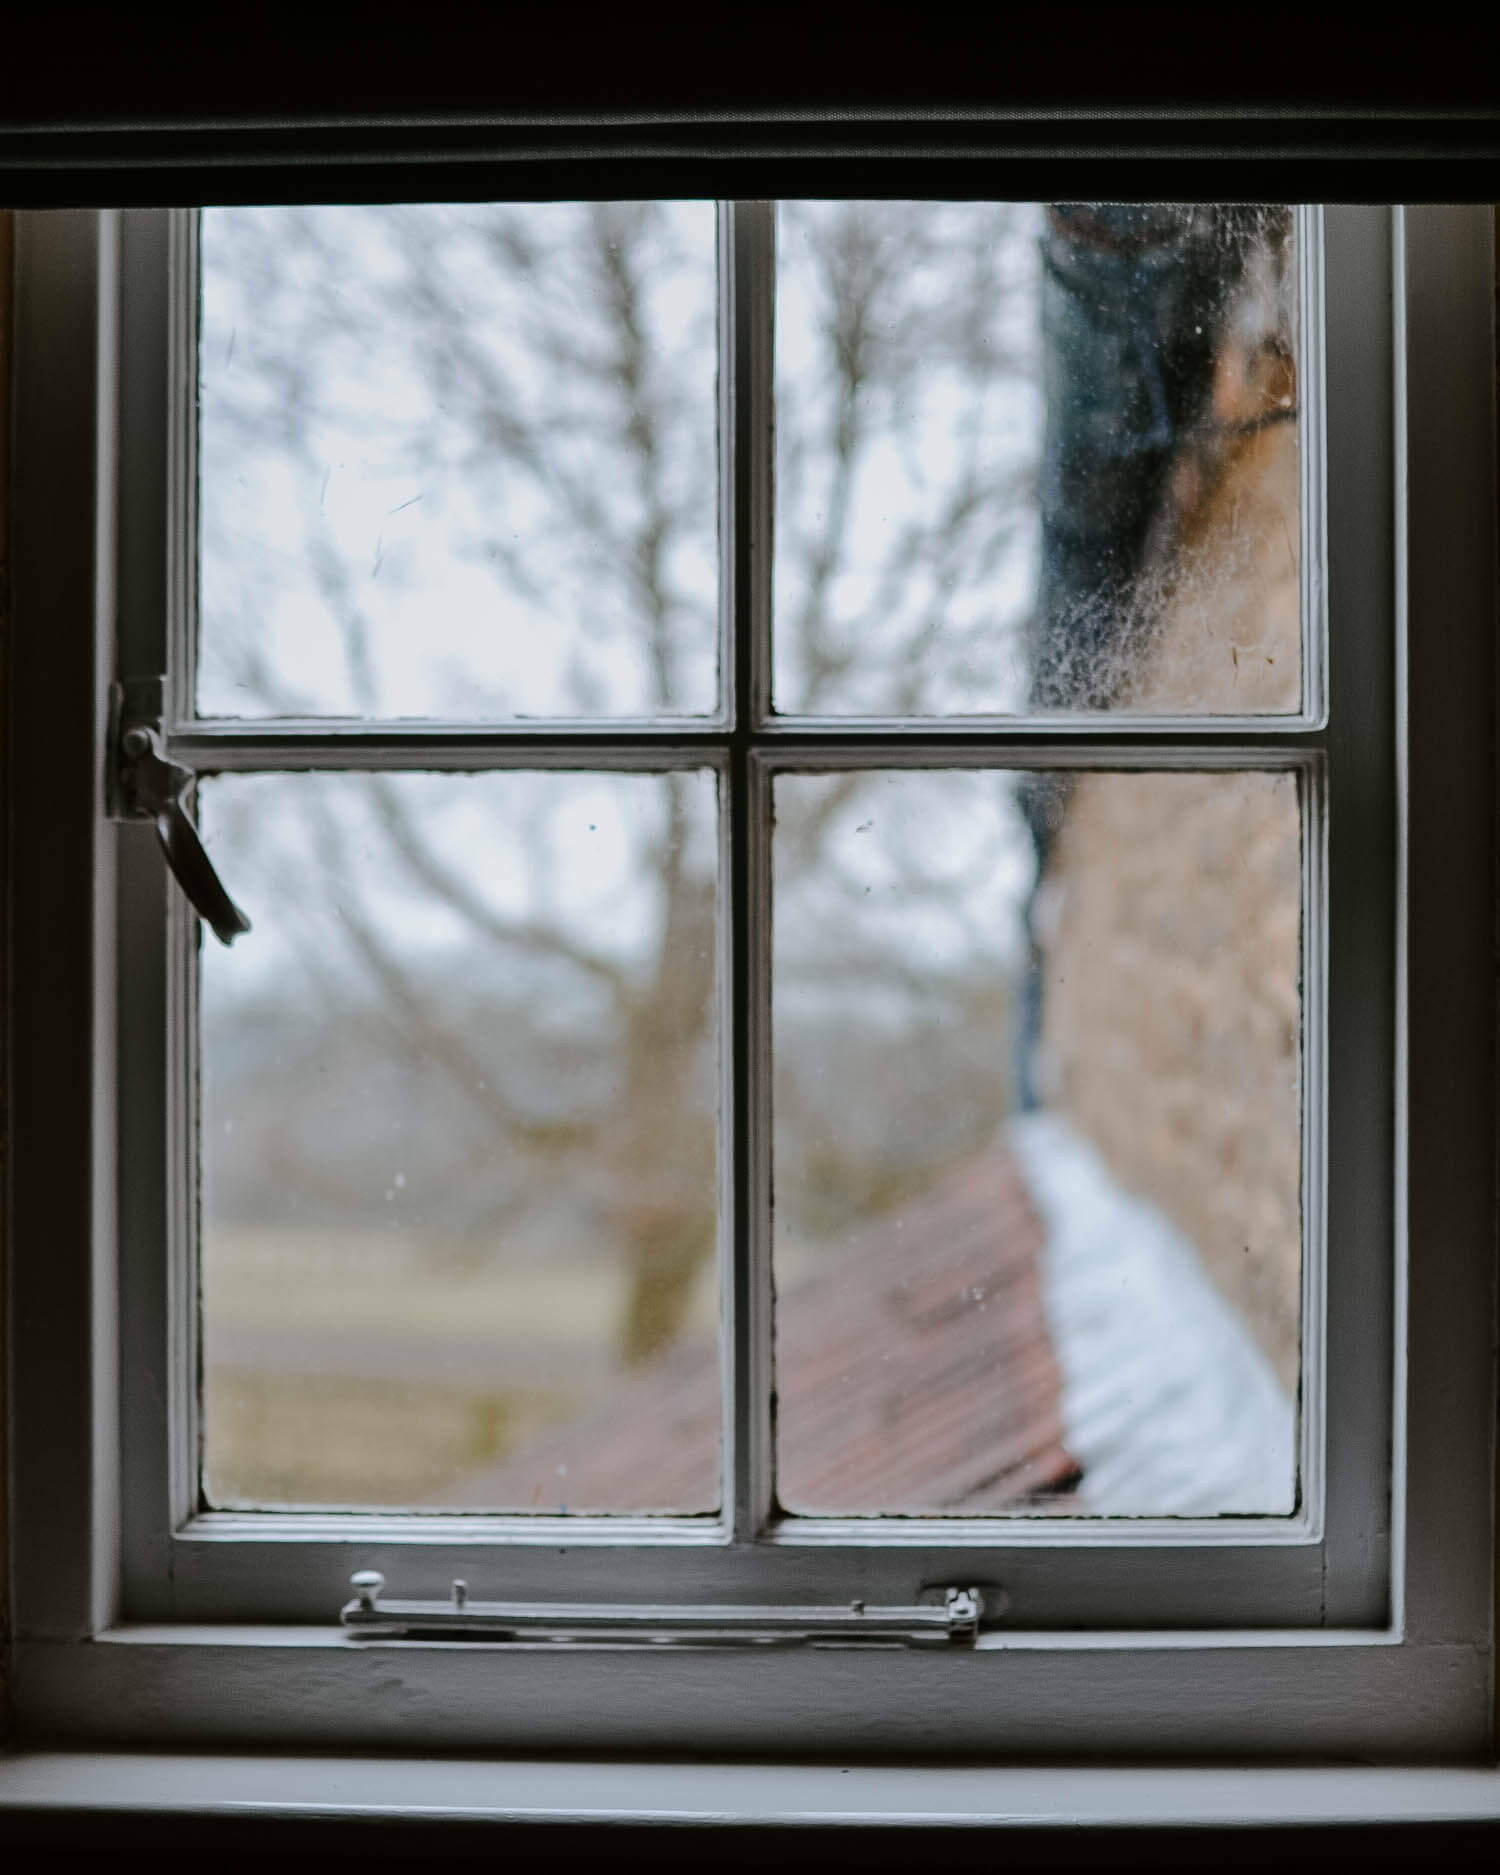 Picture of a window taken in January when I was just starting to pivot my business